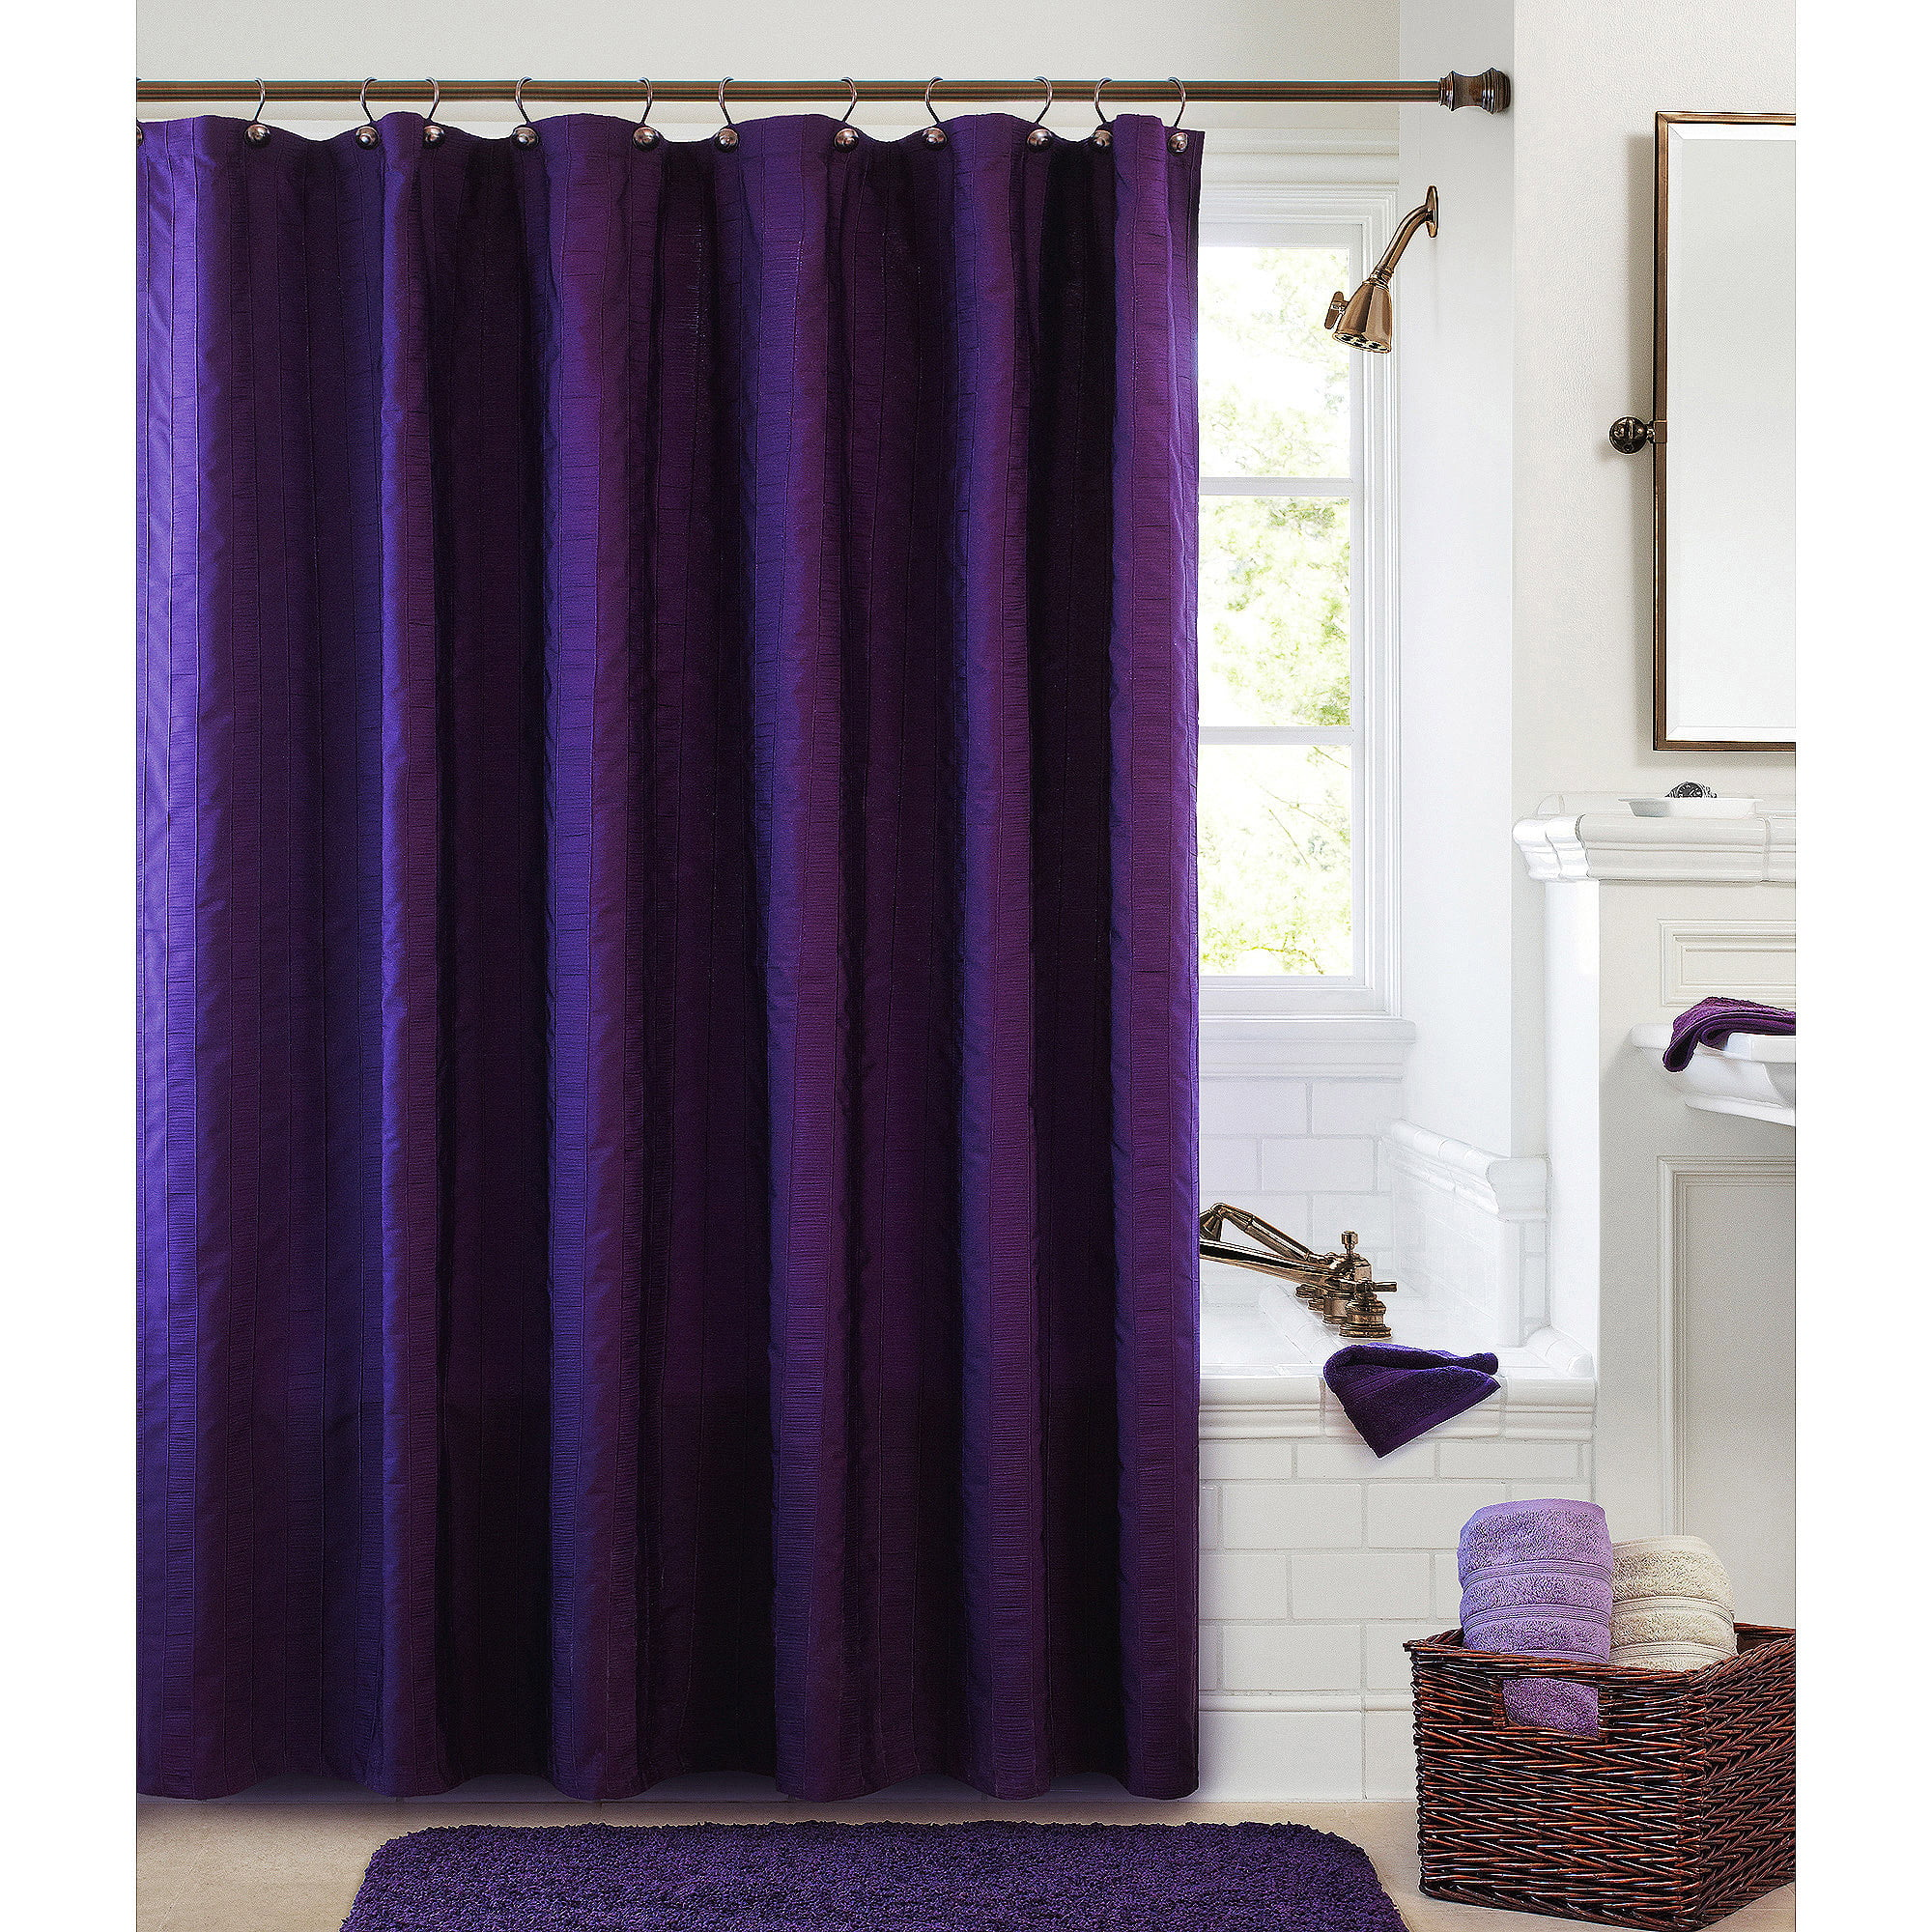 gratograt bathroom curtains pictures shower curtain photos june fabric awesome sets of new